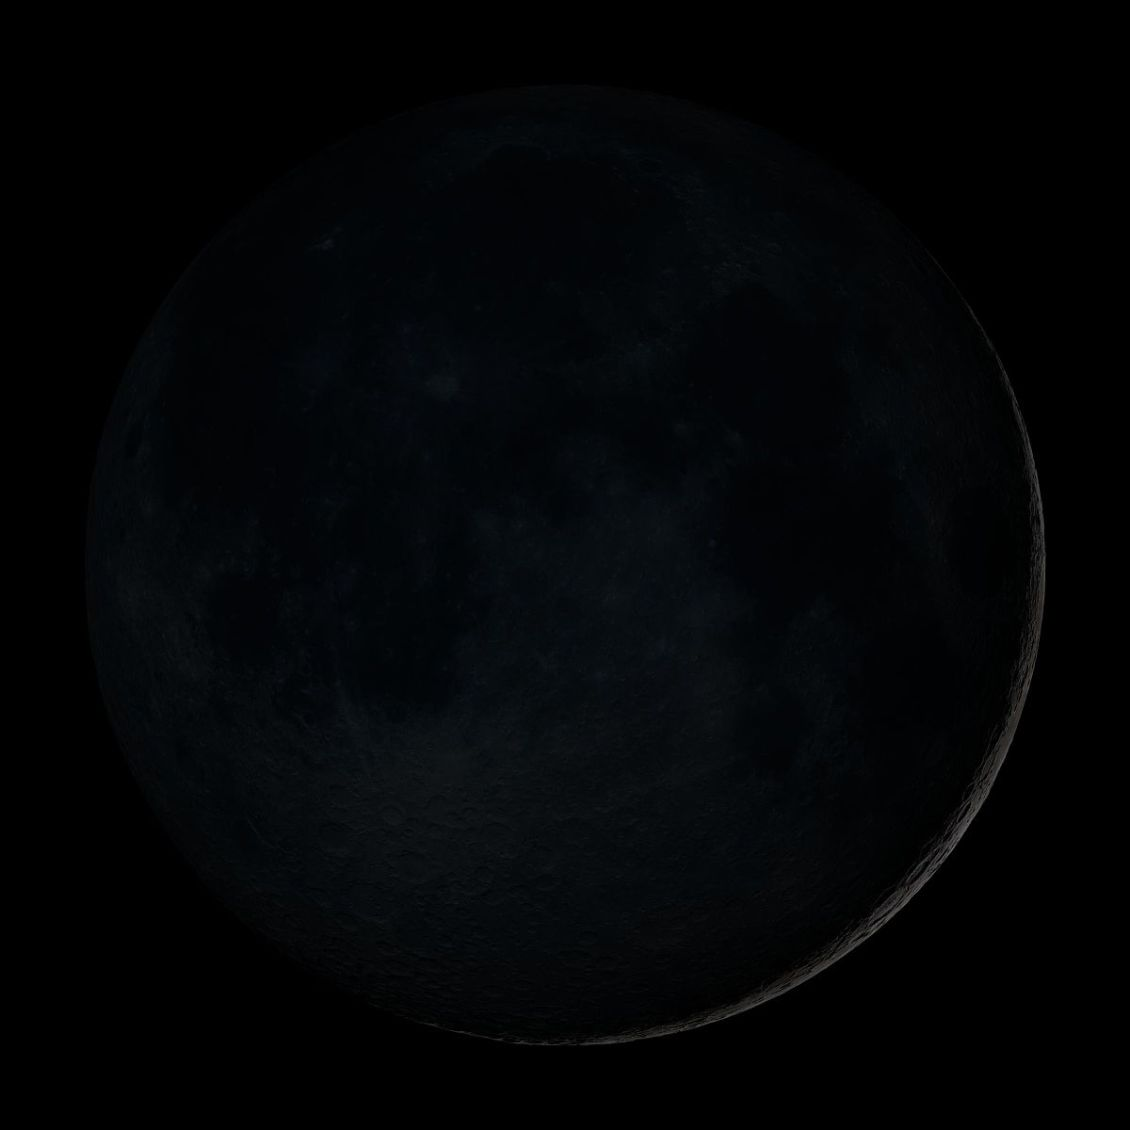 a New moon is seen in the sky